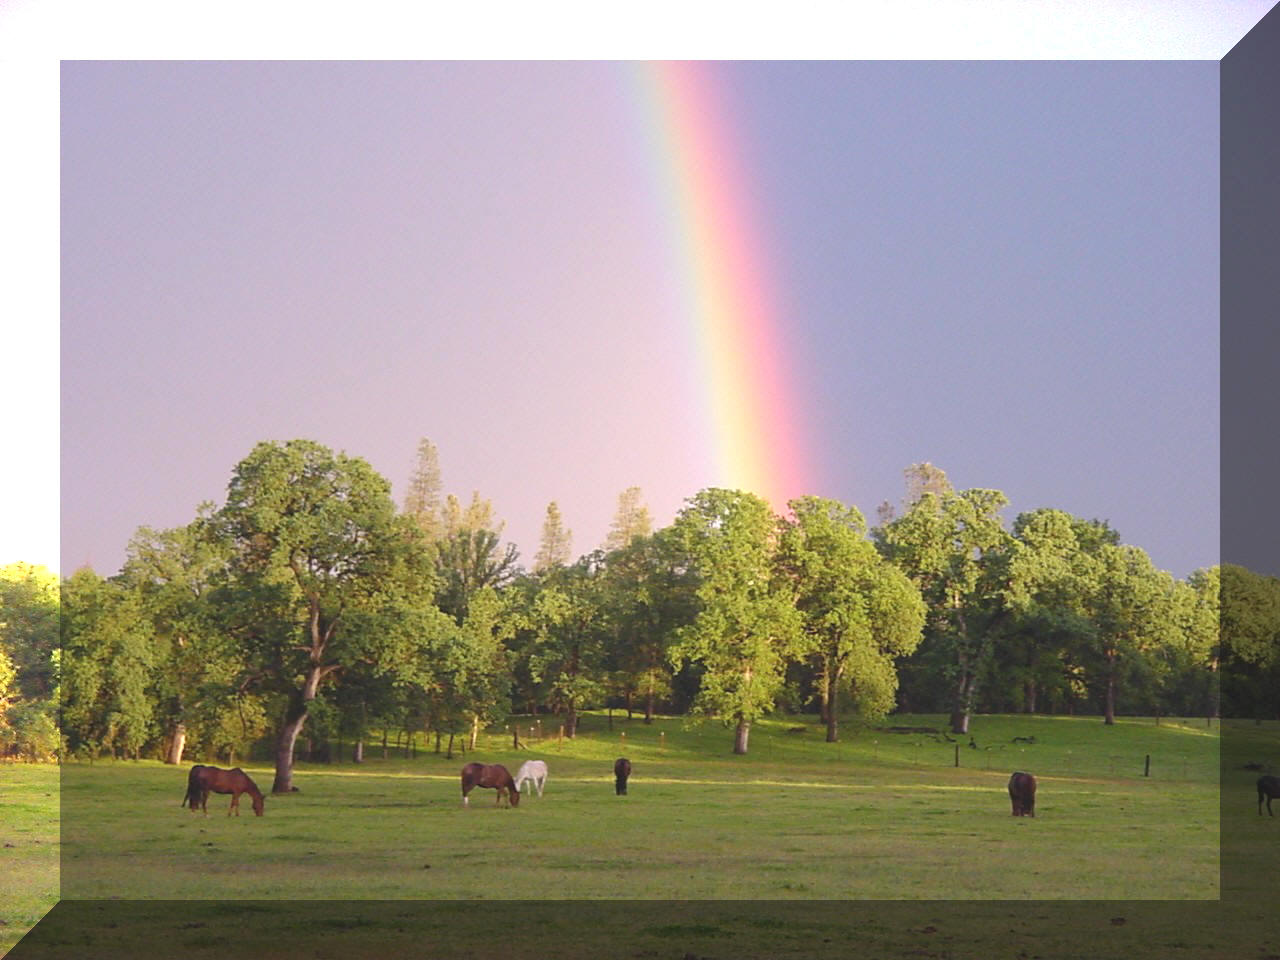 At the end of the rainbow - is the Flying H Ranch